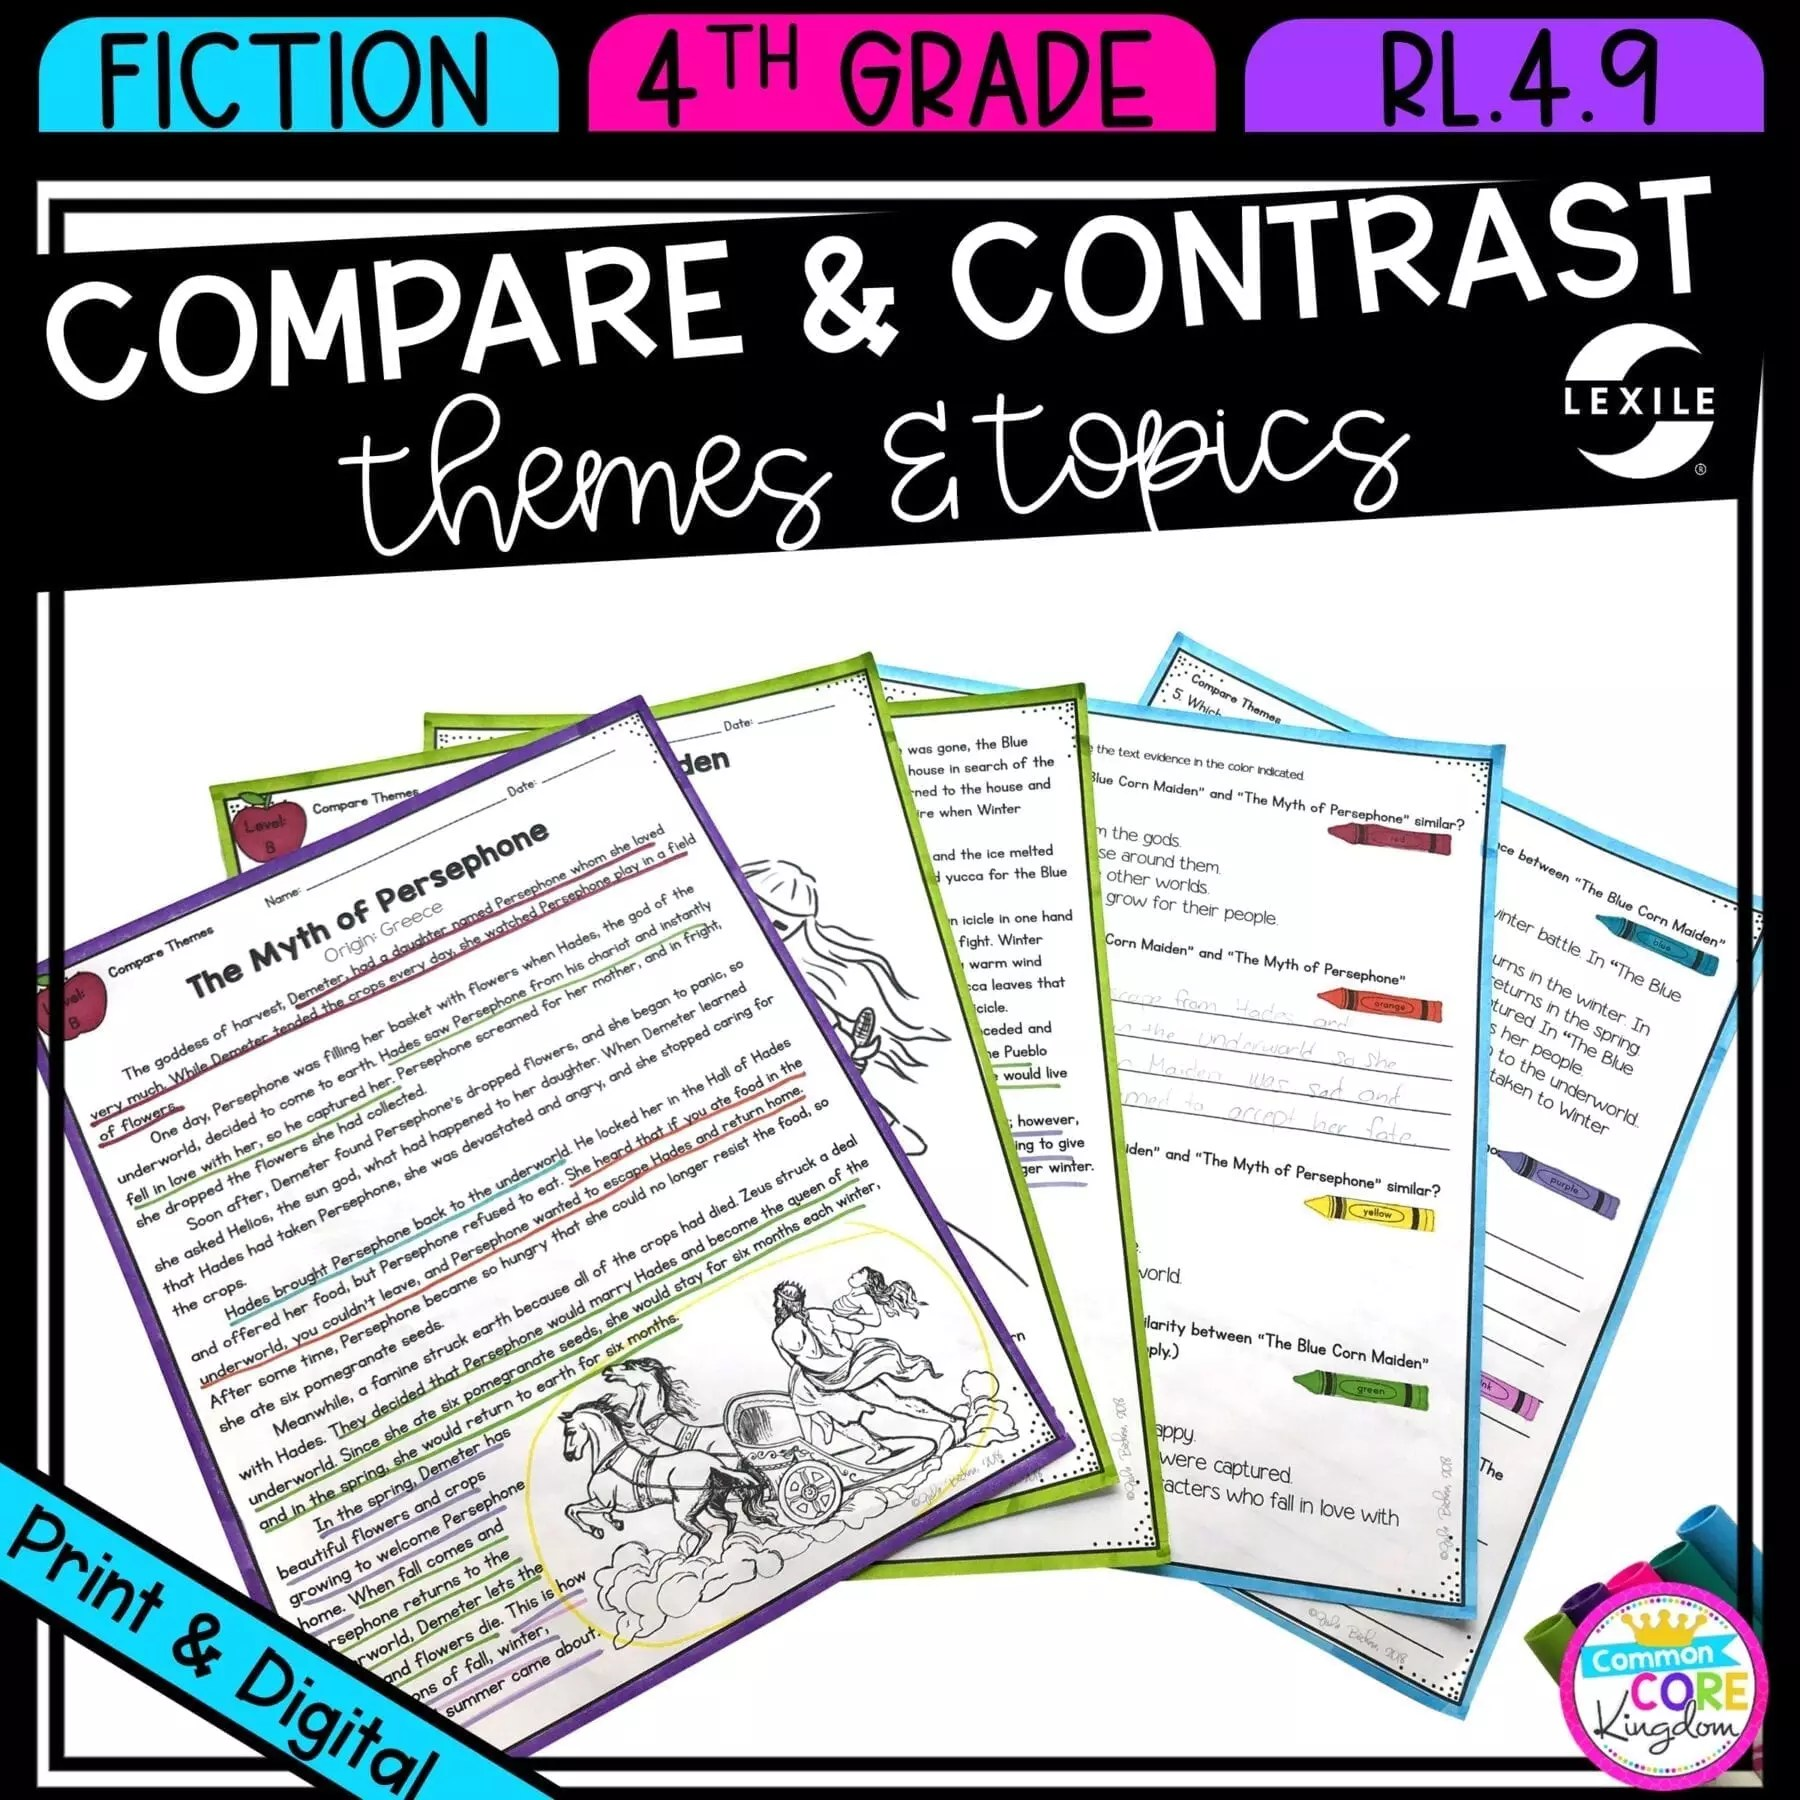 hight resolution of Compare \u0026 Contrast Theme 4th Grade  Common Core Kingdom